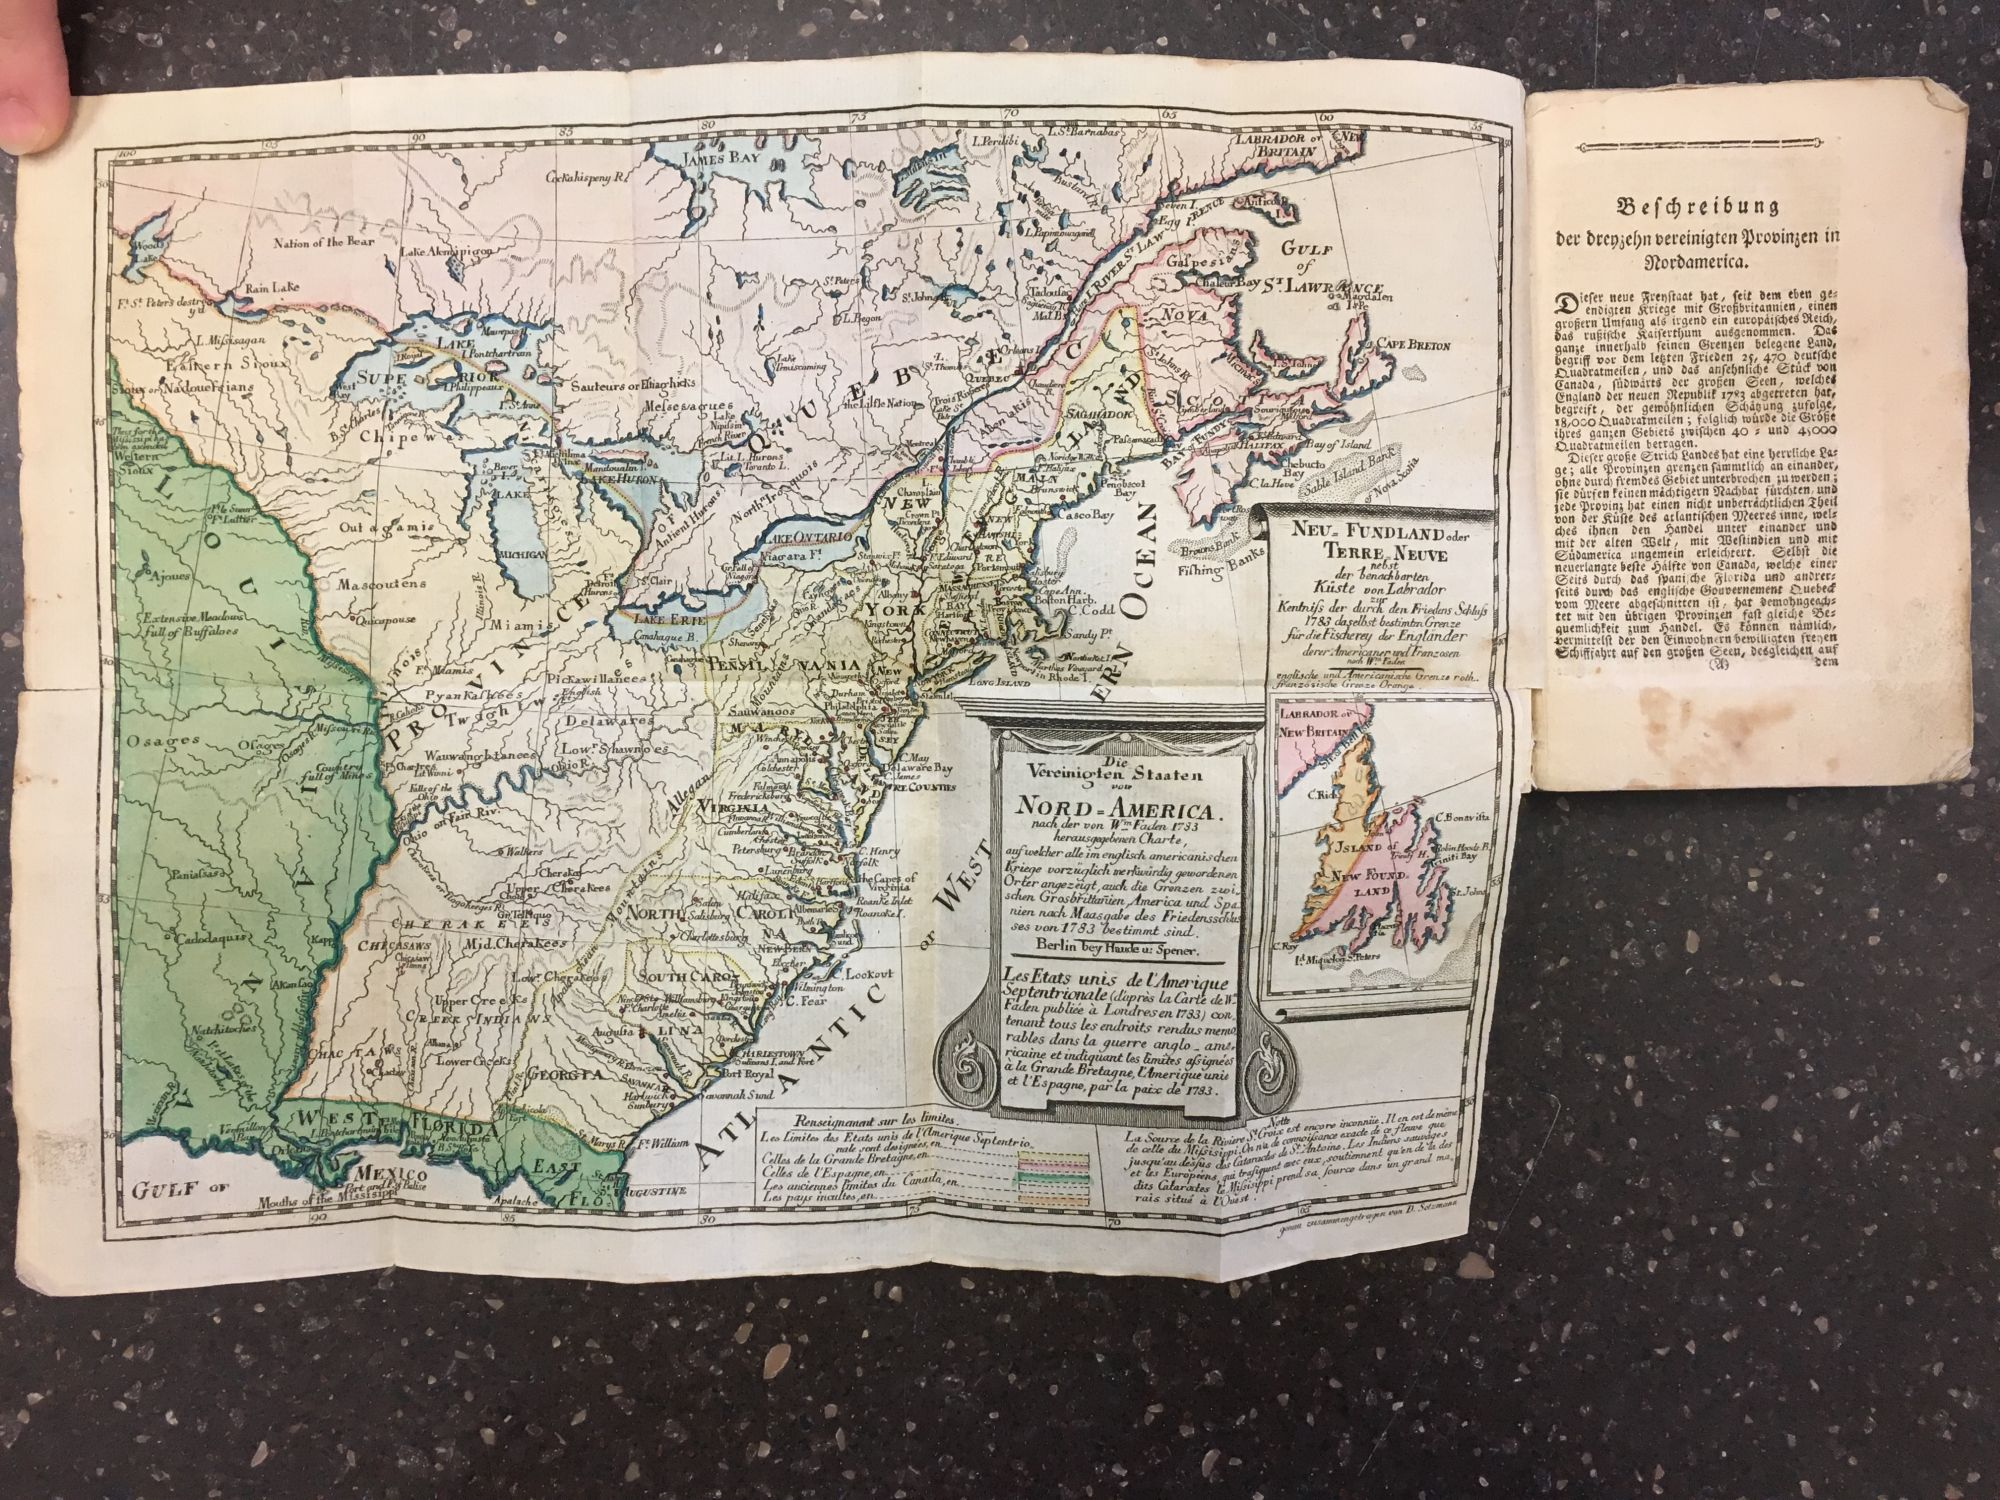 ALLGEMEINES HISTORISCHES TASCHENBUCH, ODER, ABRISS DER MERKWÜRDIGSTEN NEUEN WELT-BEGEBENHEITEN: ENTHALTEND FÜR 1784 DIE GESCHICHTE DER REVOLUTION VON NORD-AMERICA [GENERAL HISTORICAL POCKETBOOK, SUMMARIZING NOTEWORTHY WORLD NEWS OF 1784, WITH A HISTORY OF THE REVOLUTION IN NORTH AMERICA.]. Matthias Christian Sprengel, Daniel Friedrich Sotzmann.